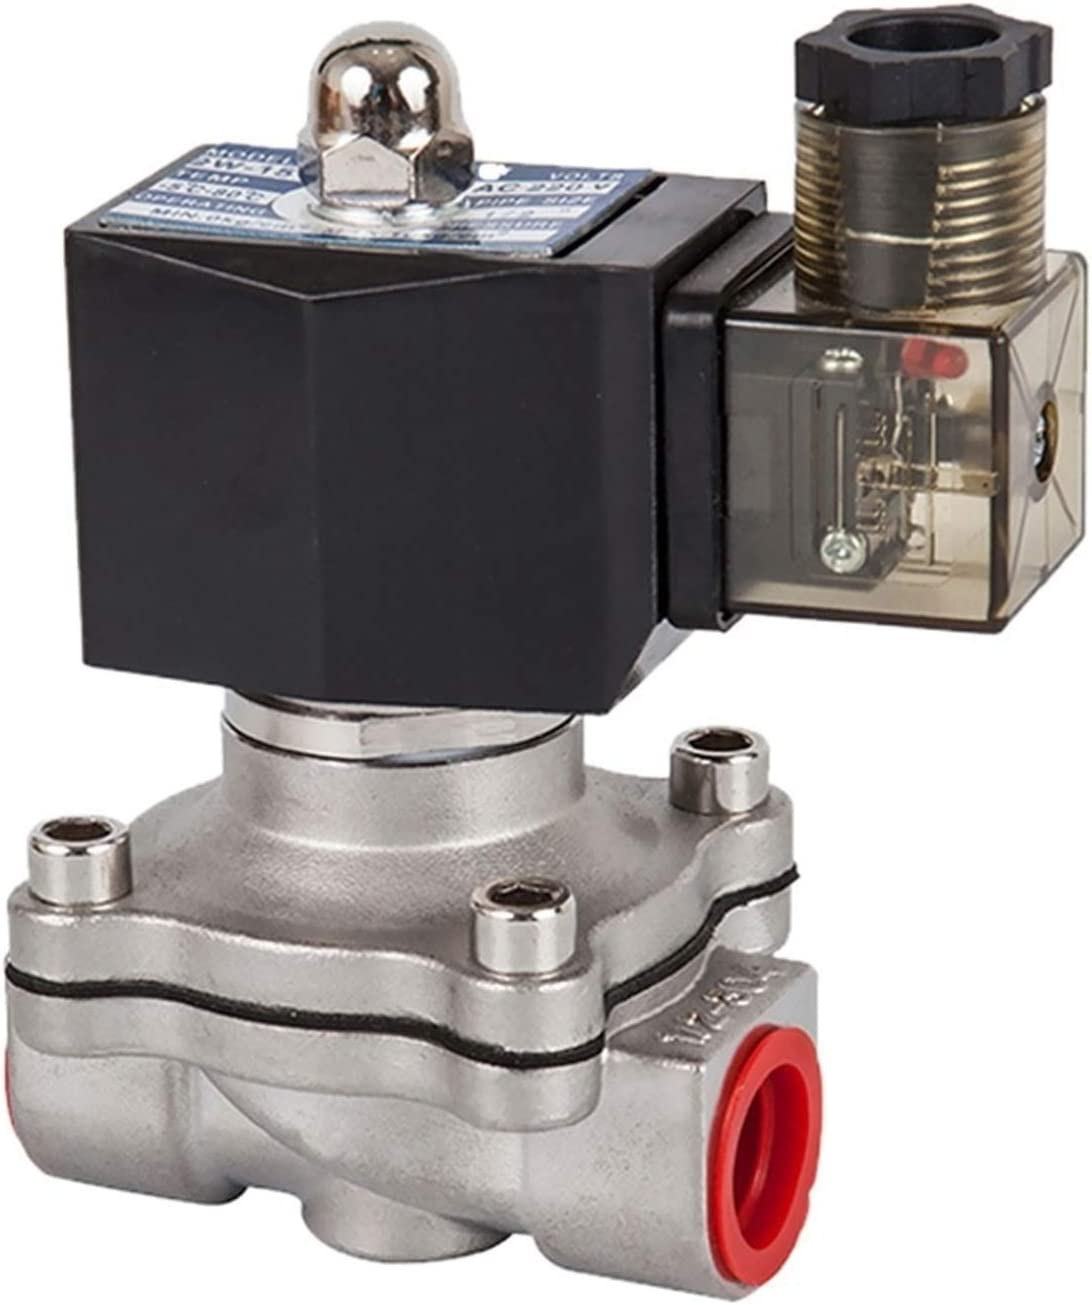 DN15 to 50 Normally Closed Solenoid W 304 Max 62% OFF Industry No. 1 Stainless Steel Valve